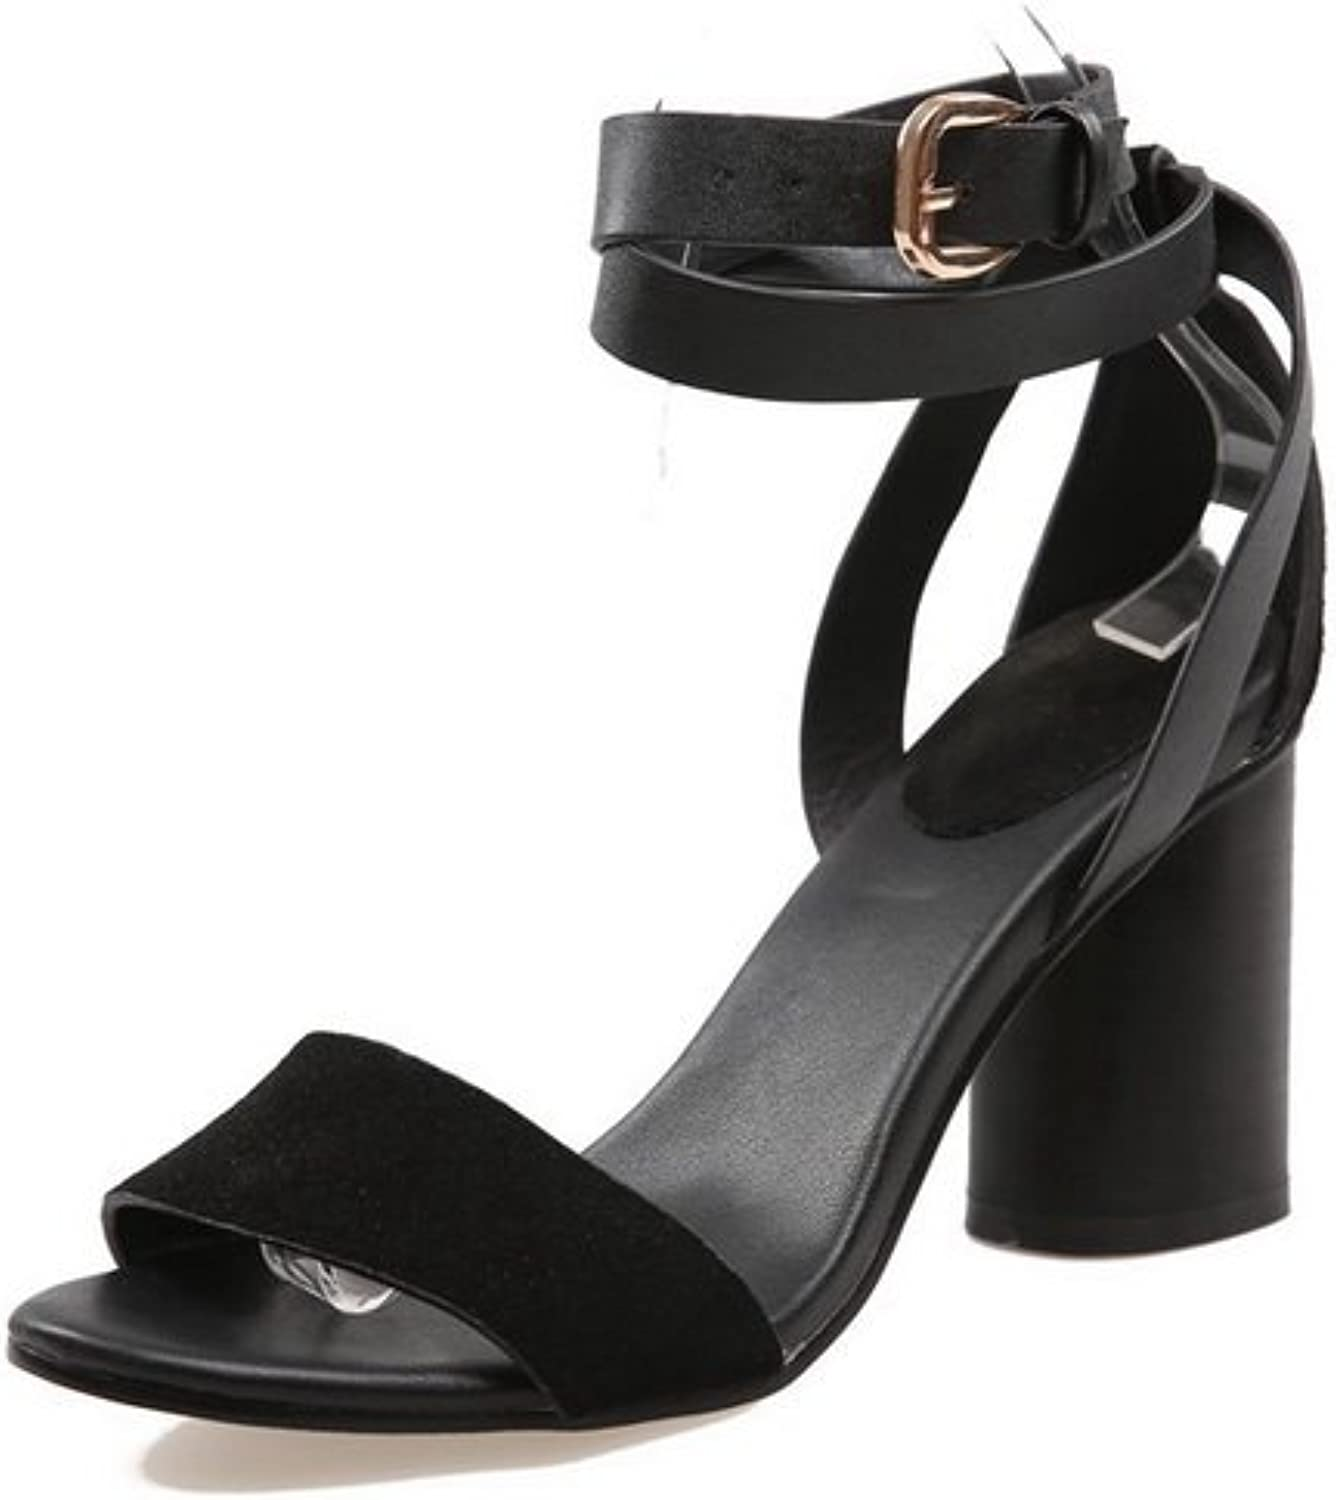 AdeeSu Womens Heeled-Sandals Peep-Toe Buckle Ankle-Wrap High-Heel Not_Water_Resistant Cold Lining Solid Light-Weight Urethane Heeled Sandals SLC03500